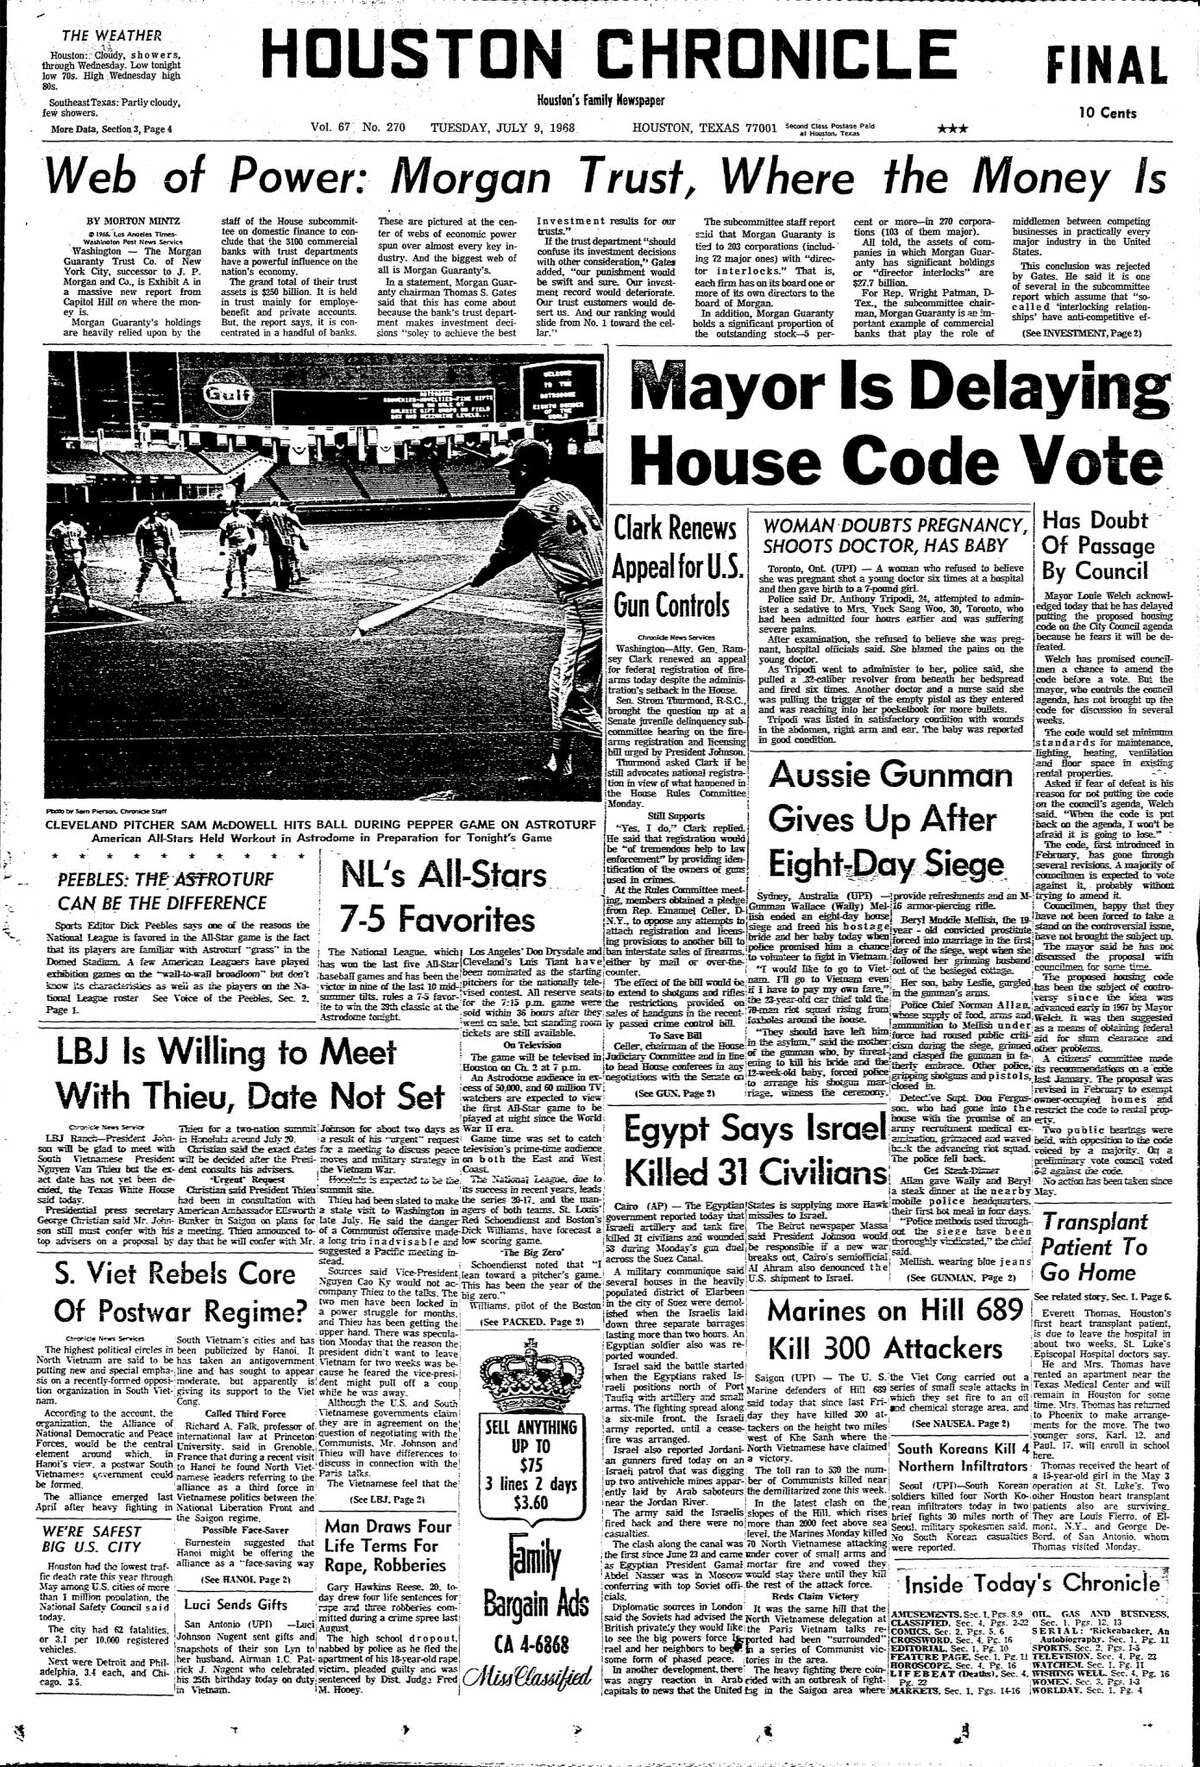 Houston Chronicle front page for July 9, 1968.